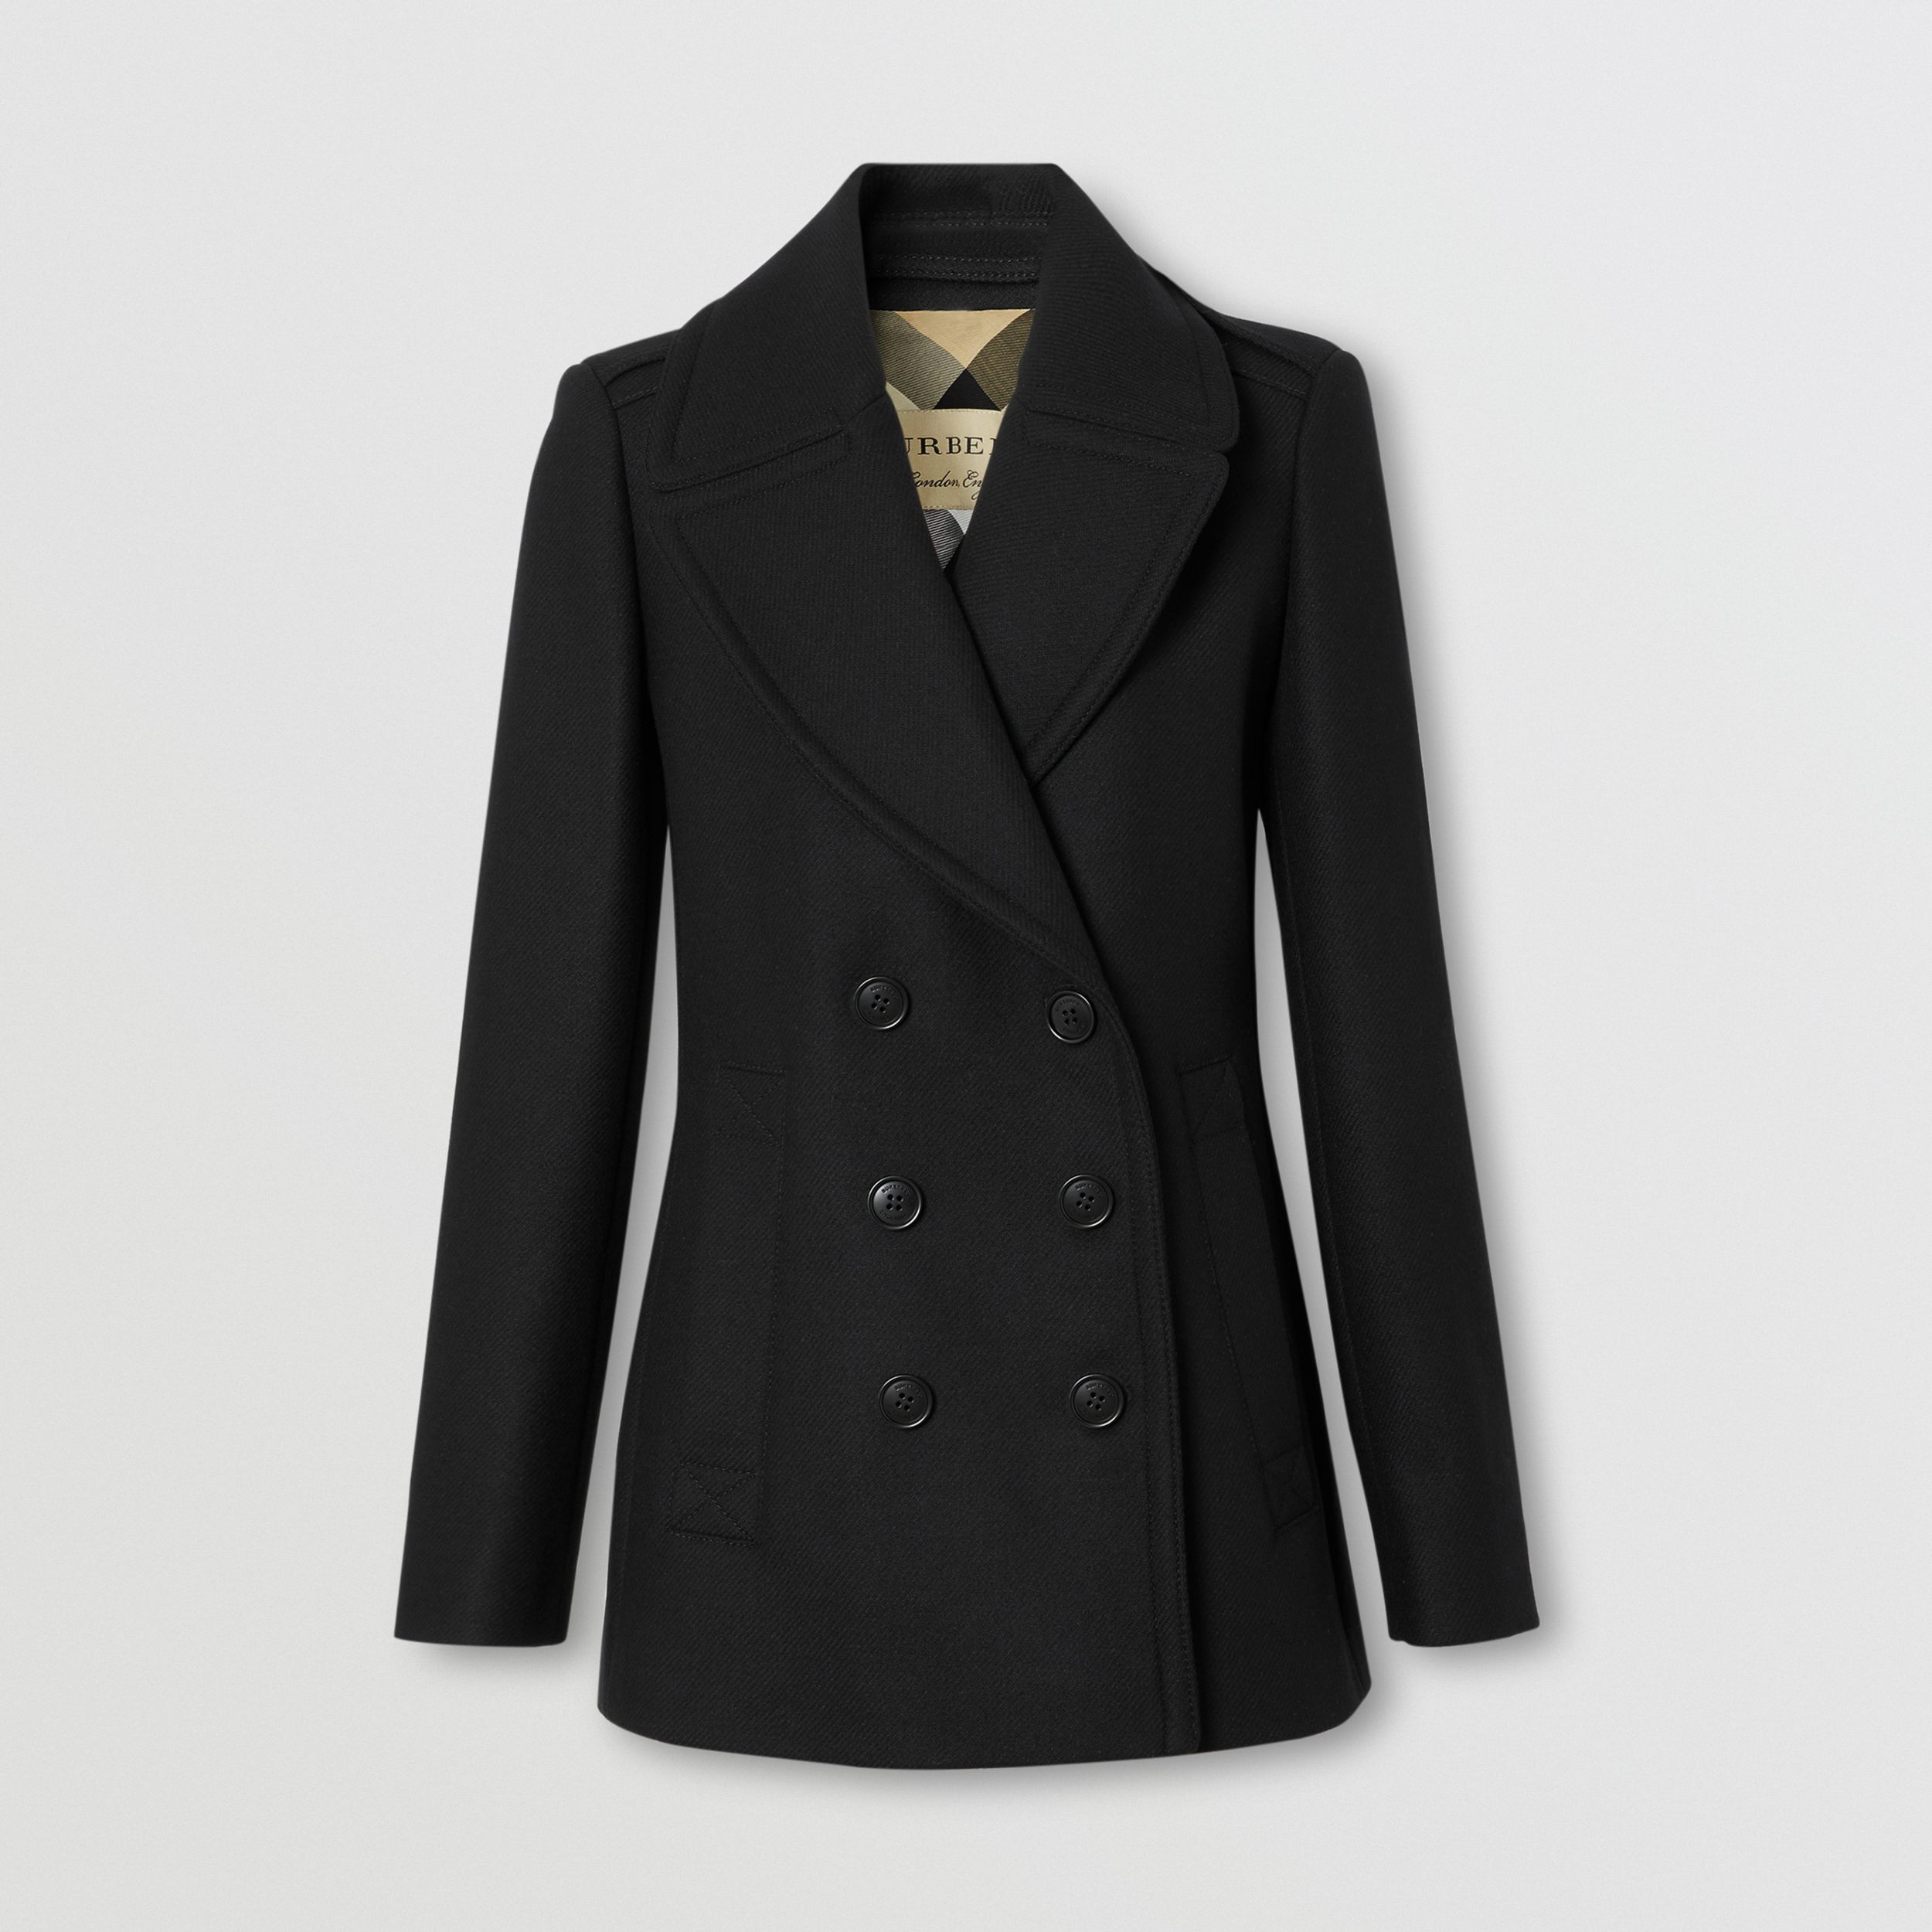 Wool Cashmere Blend Pea Coat in Black - Women | Burberry - 1